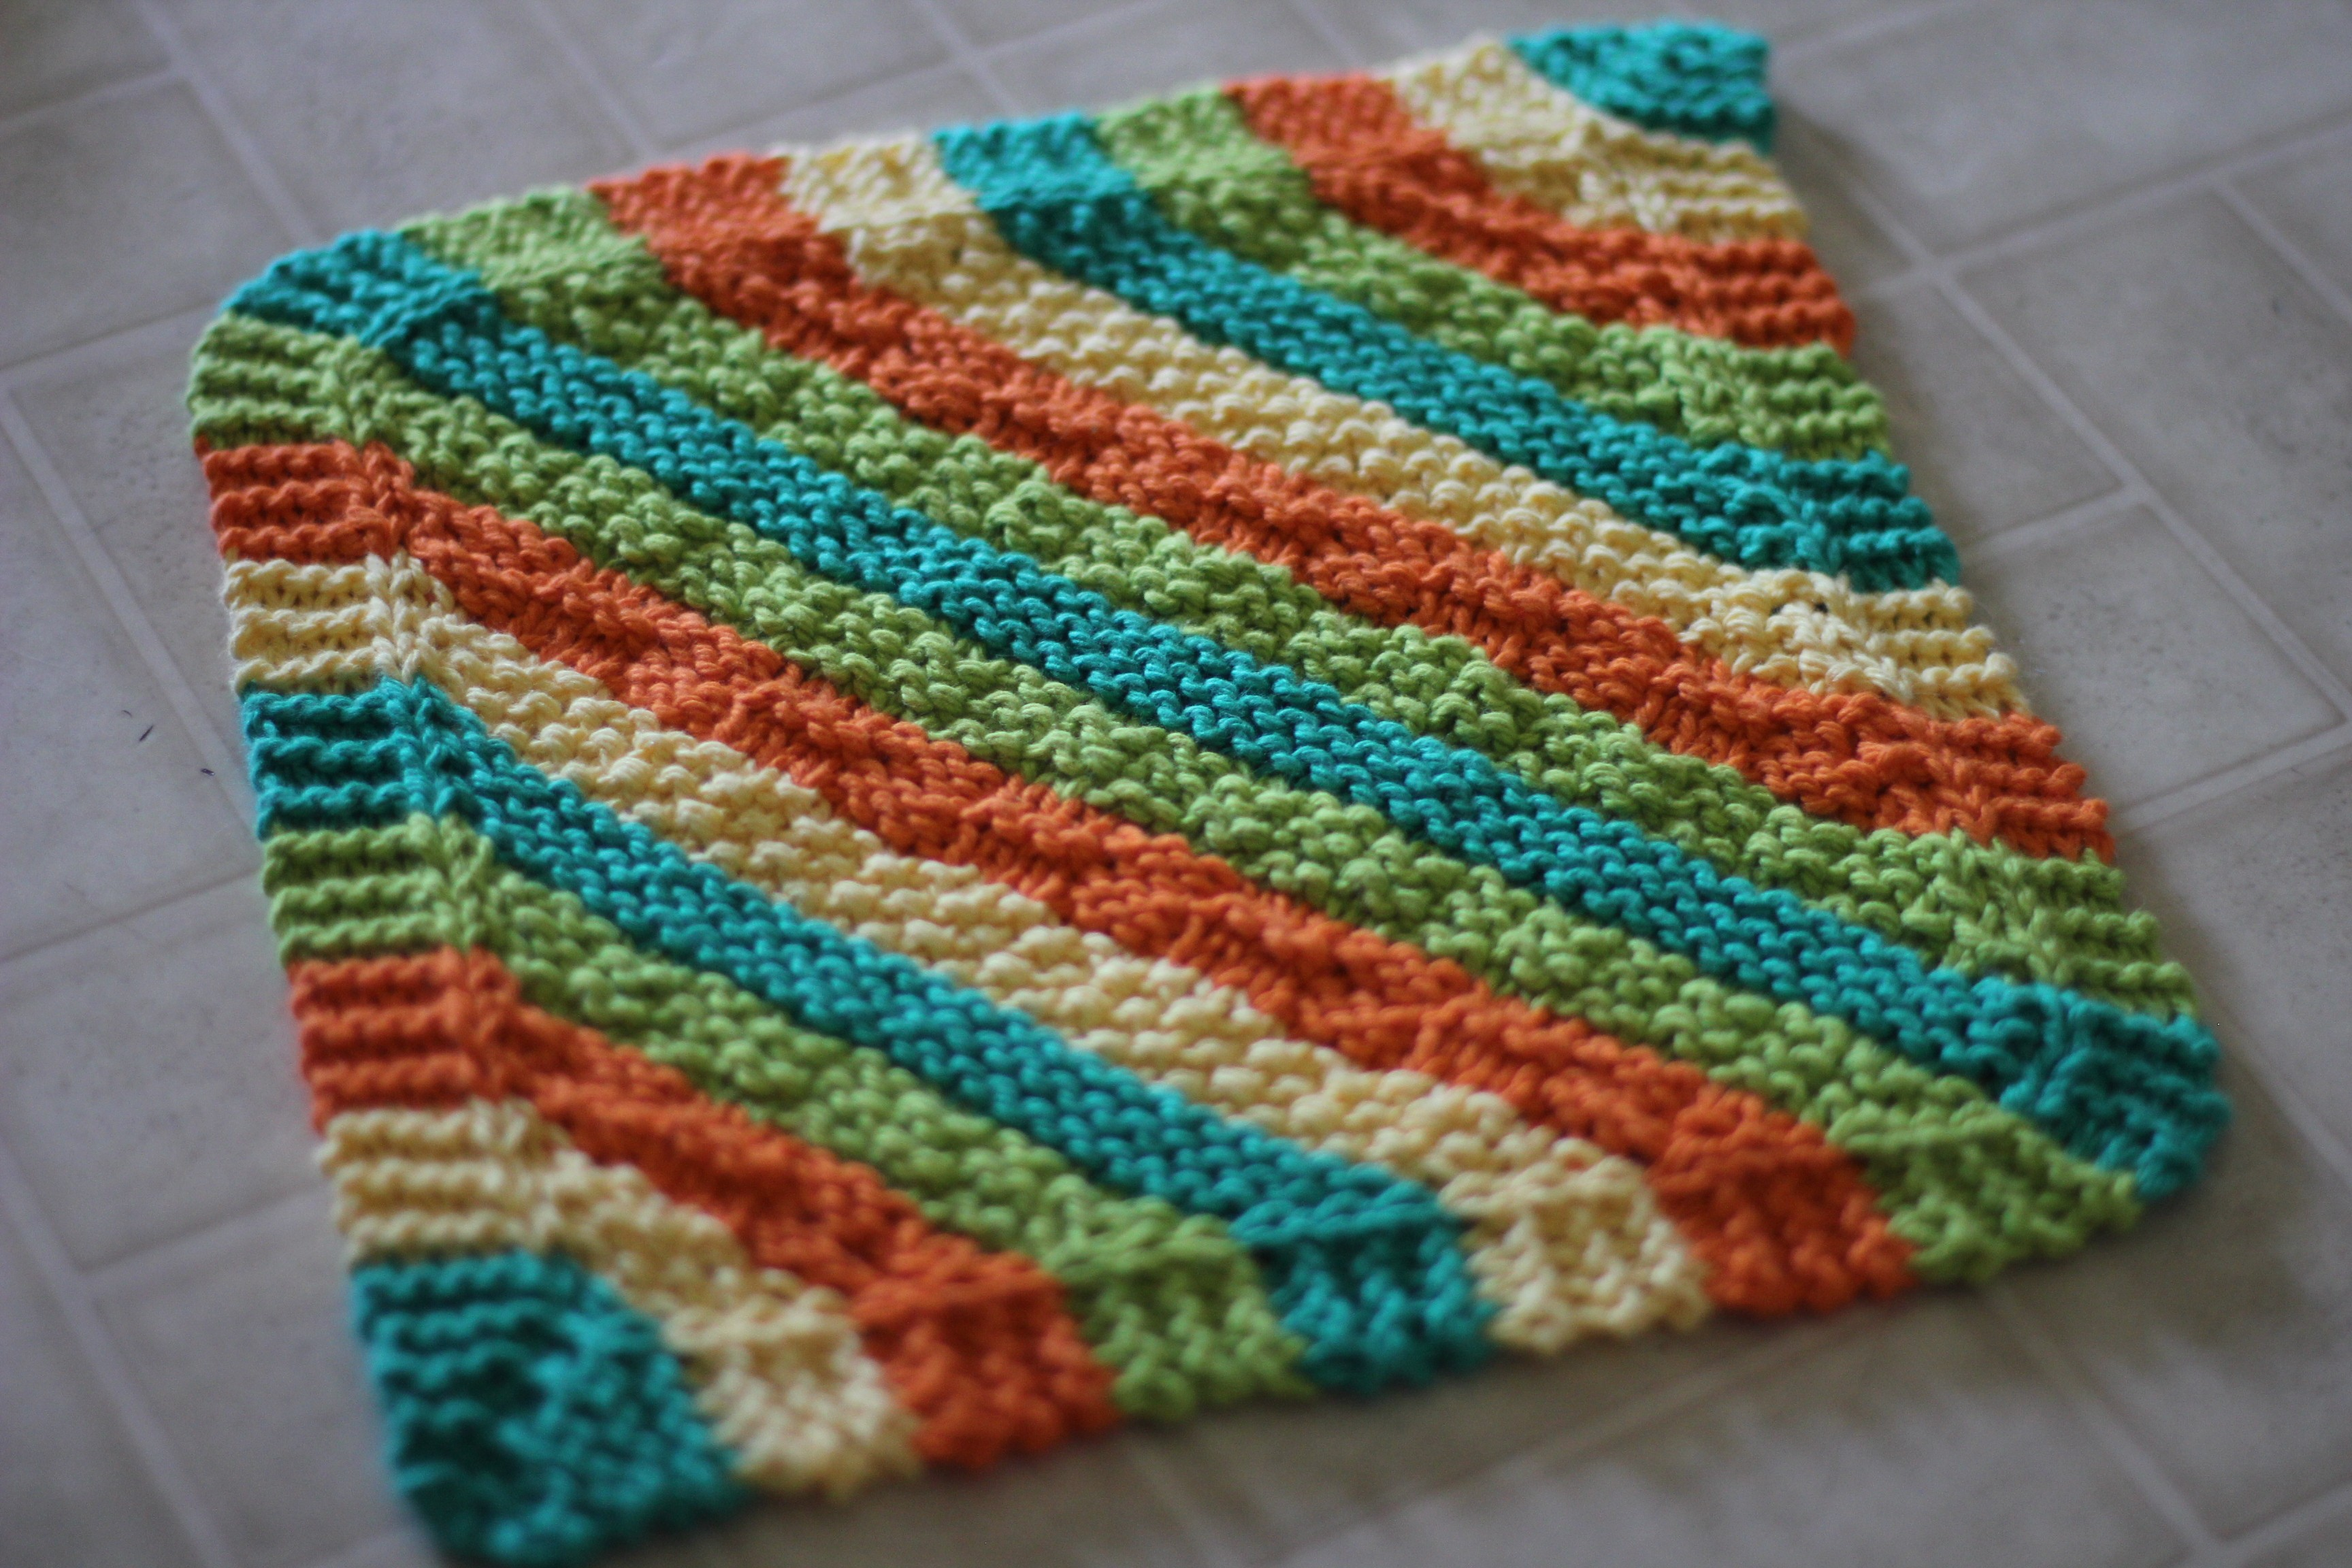 Easy Dishcloth Knitting Pattern For Beginners : Chauffage climatisation dishcloth knitting pattern easy